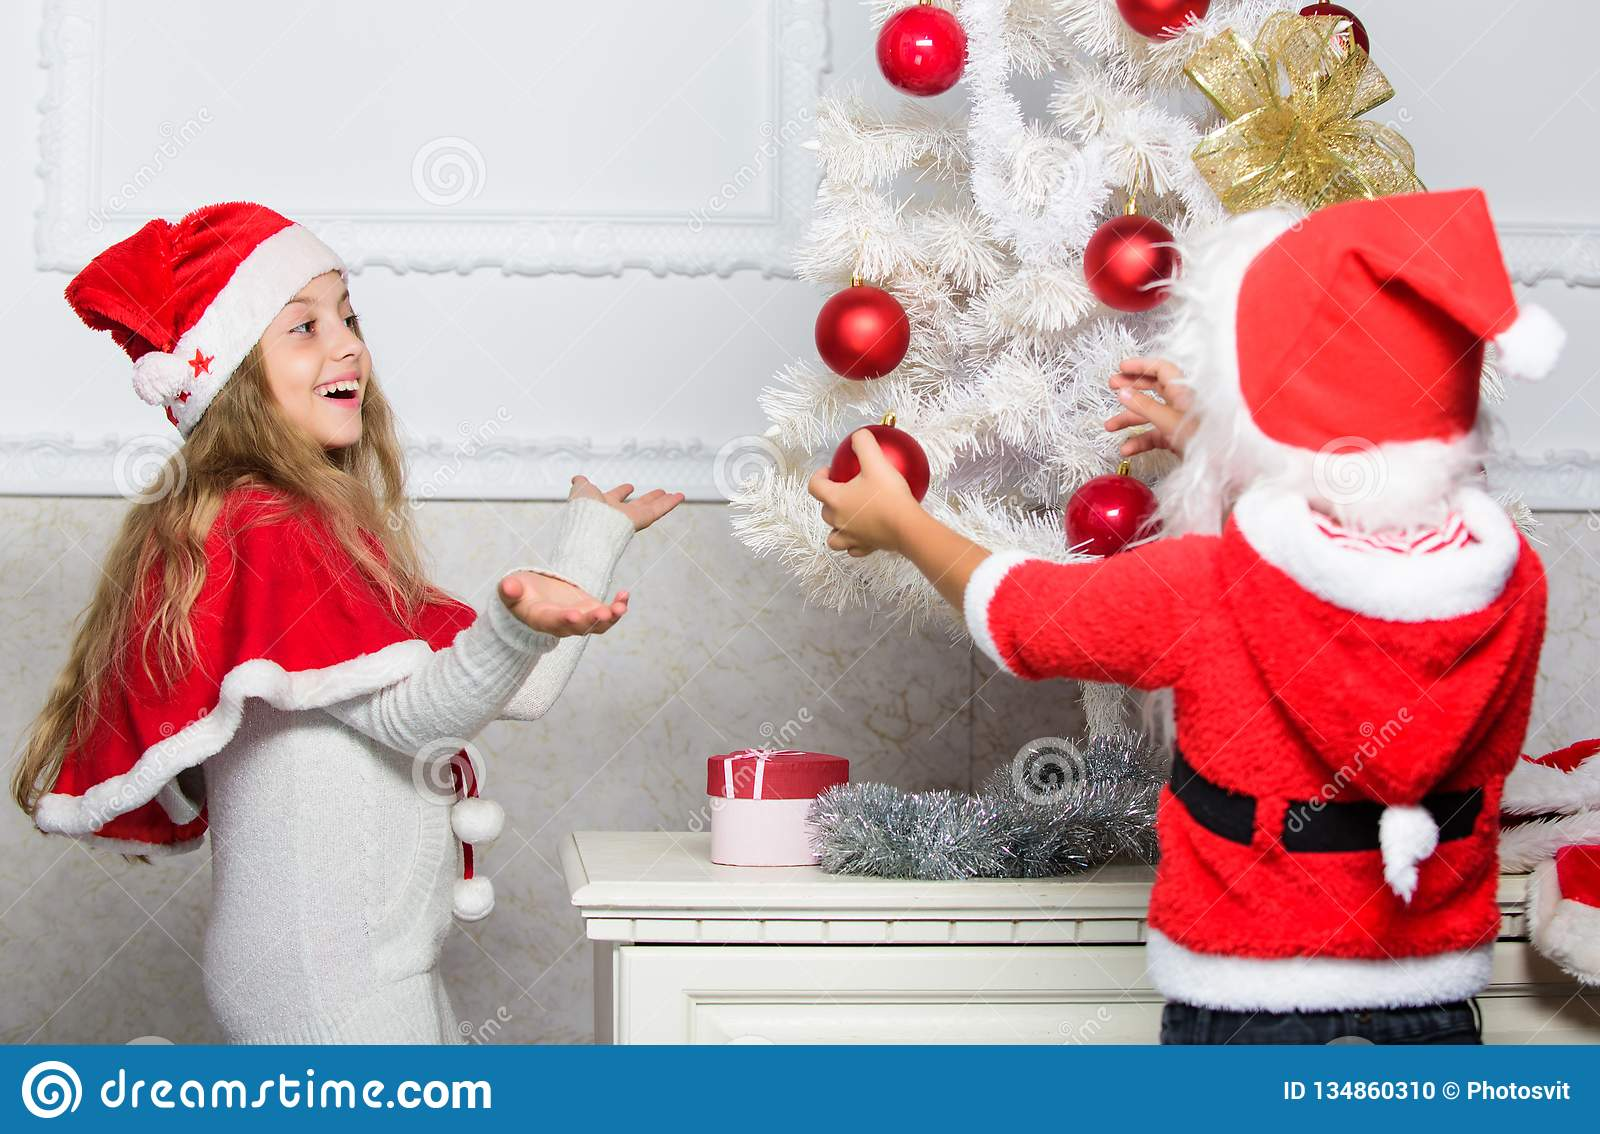 Christmas Hats For Kids.Kids In Santa Hats Decorating Christmas Tree Family